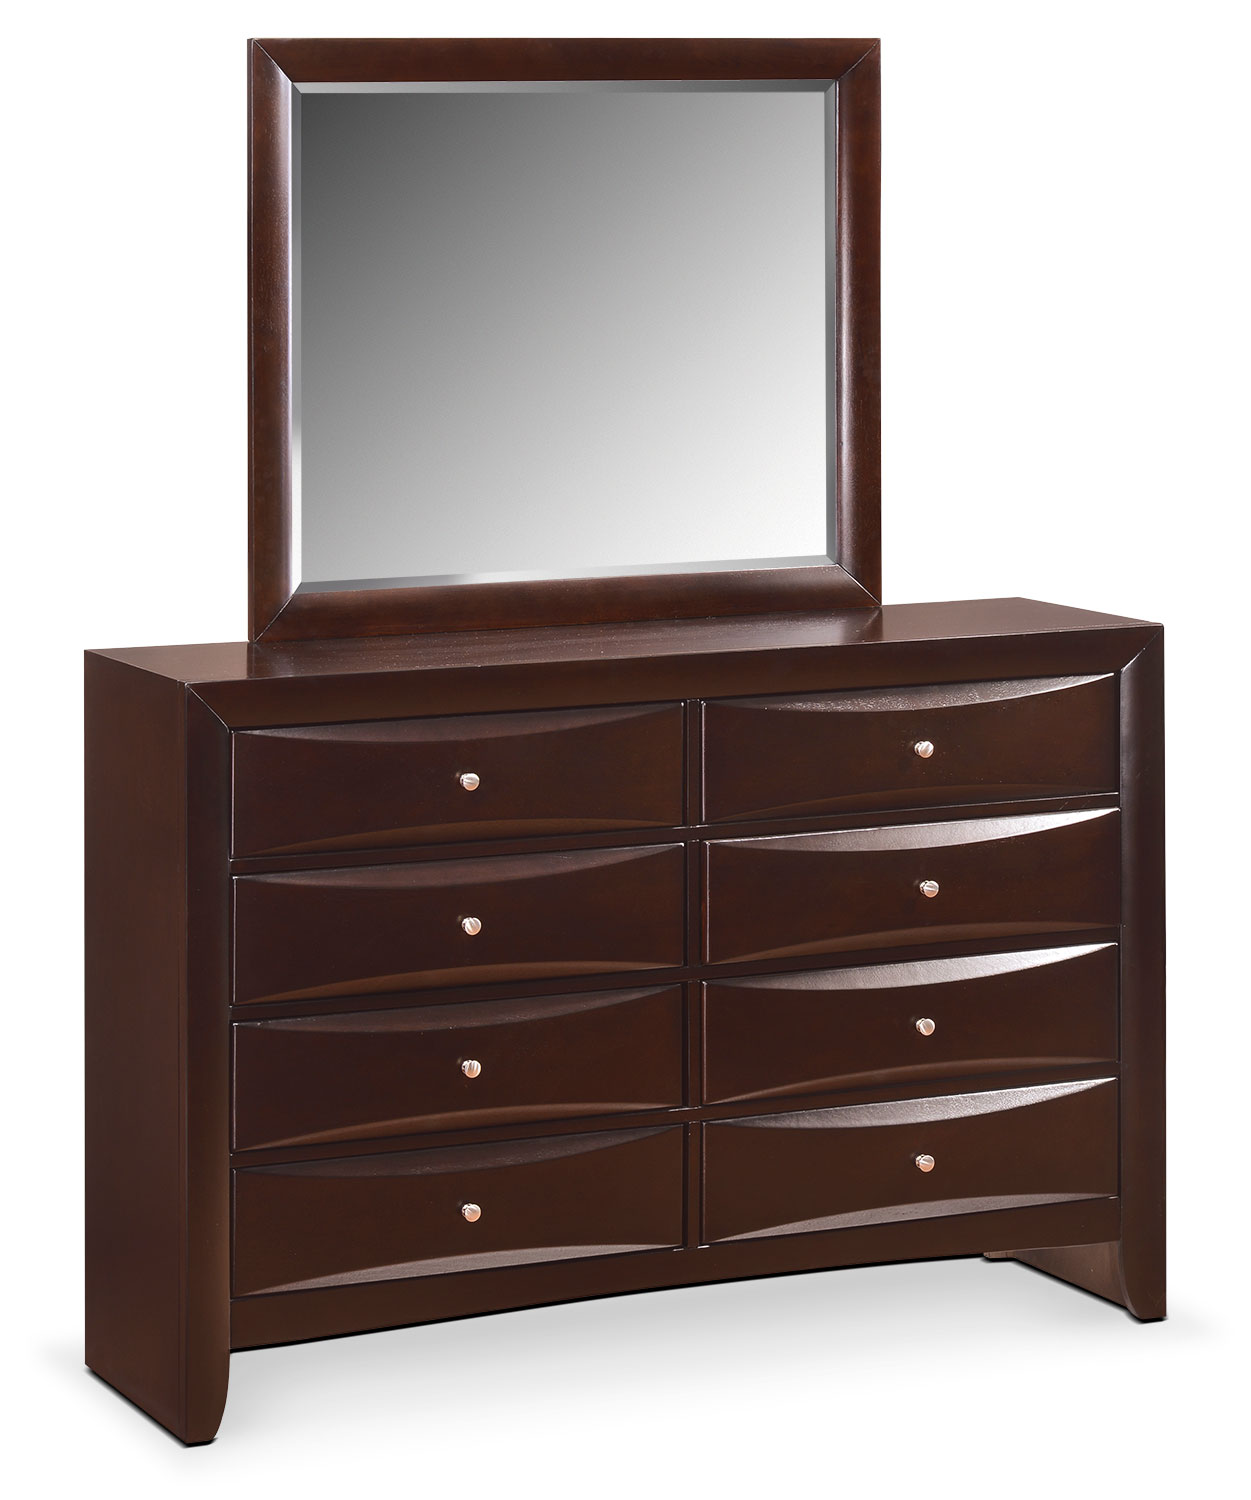 Bedroom Furniture - Braden Dresser and Mirror - Merlot